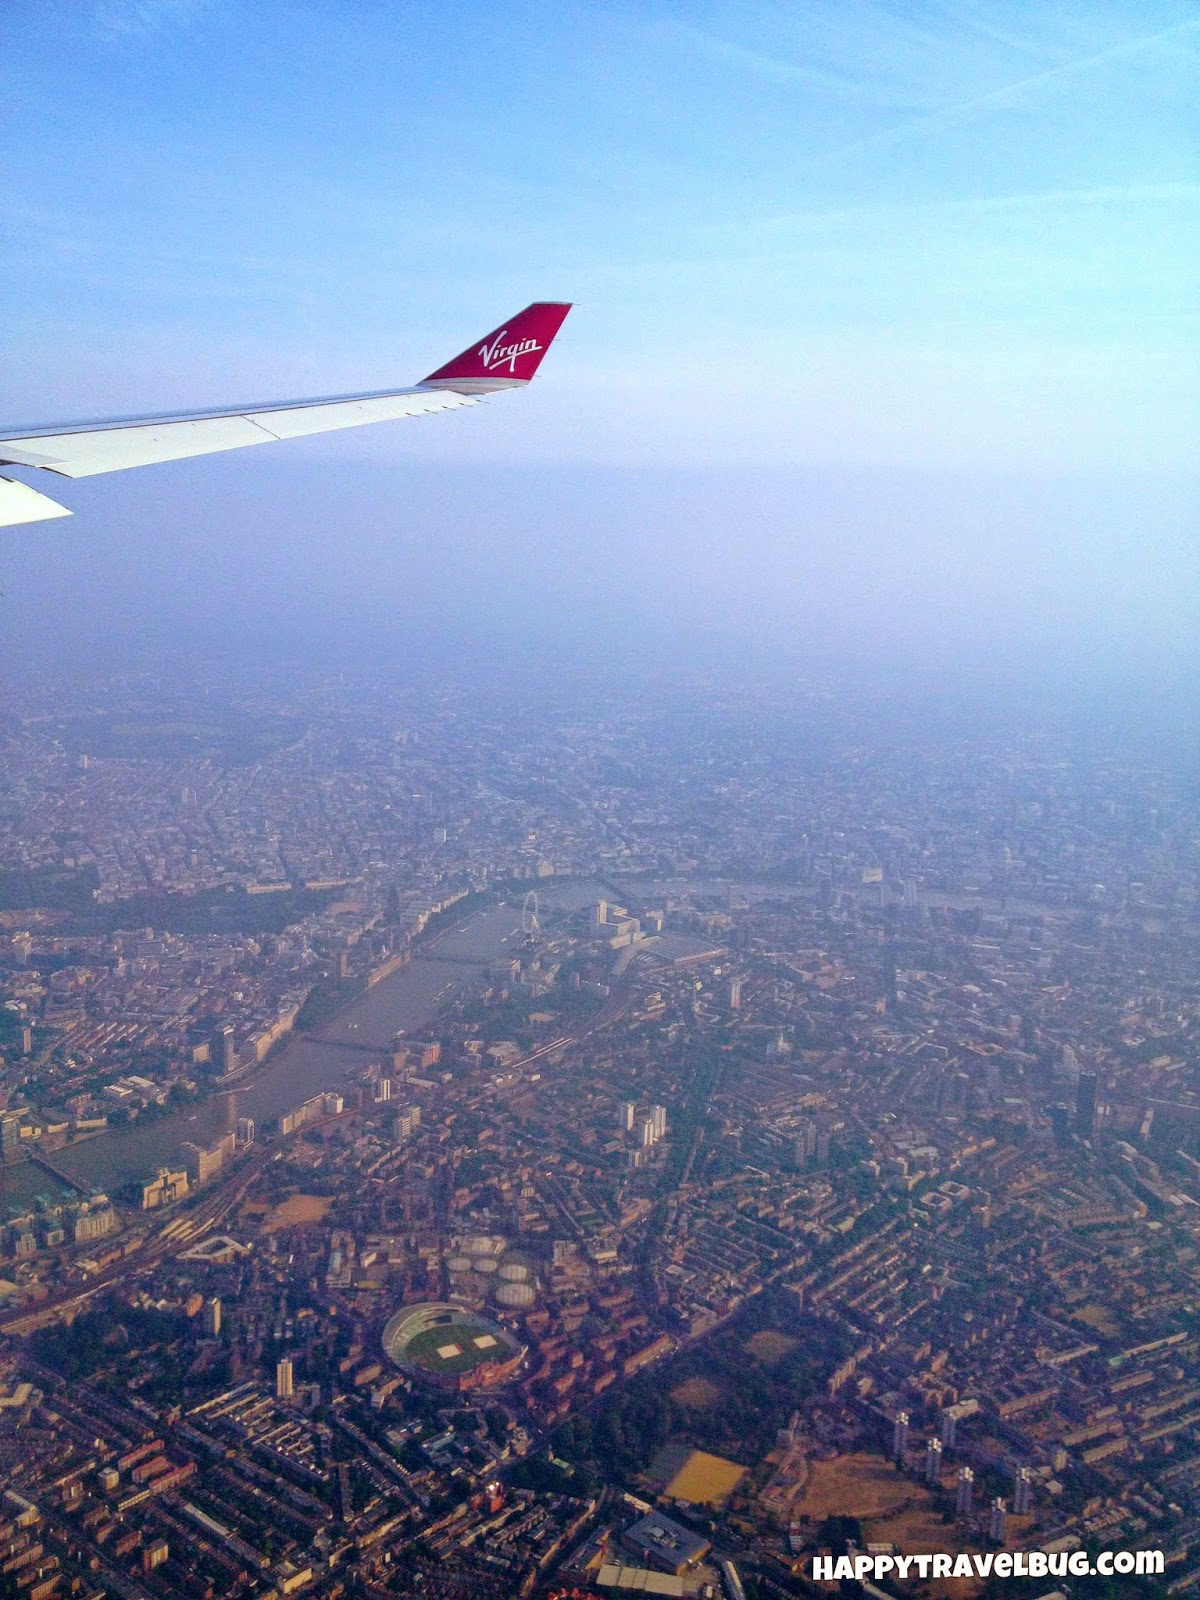 Seeing London from my virgin Atlantic airplane window